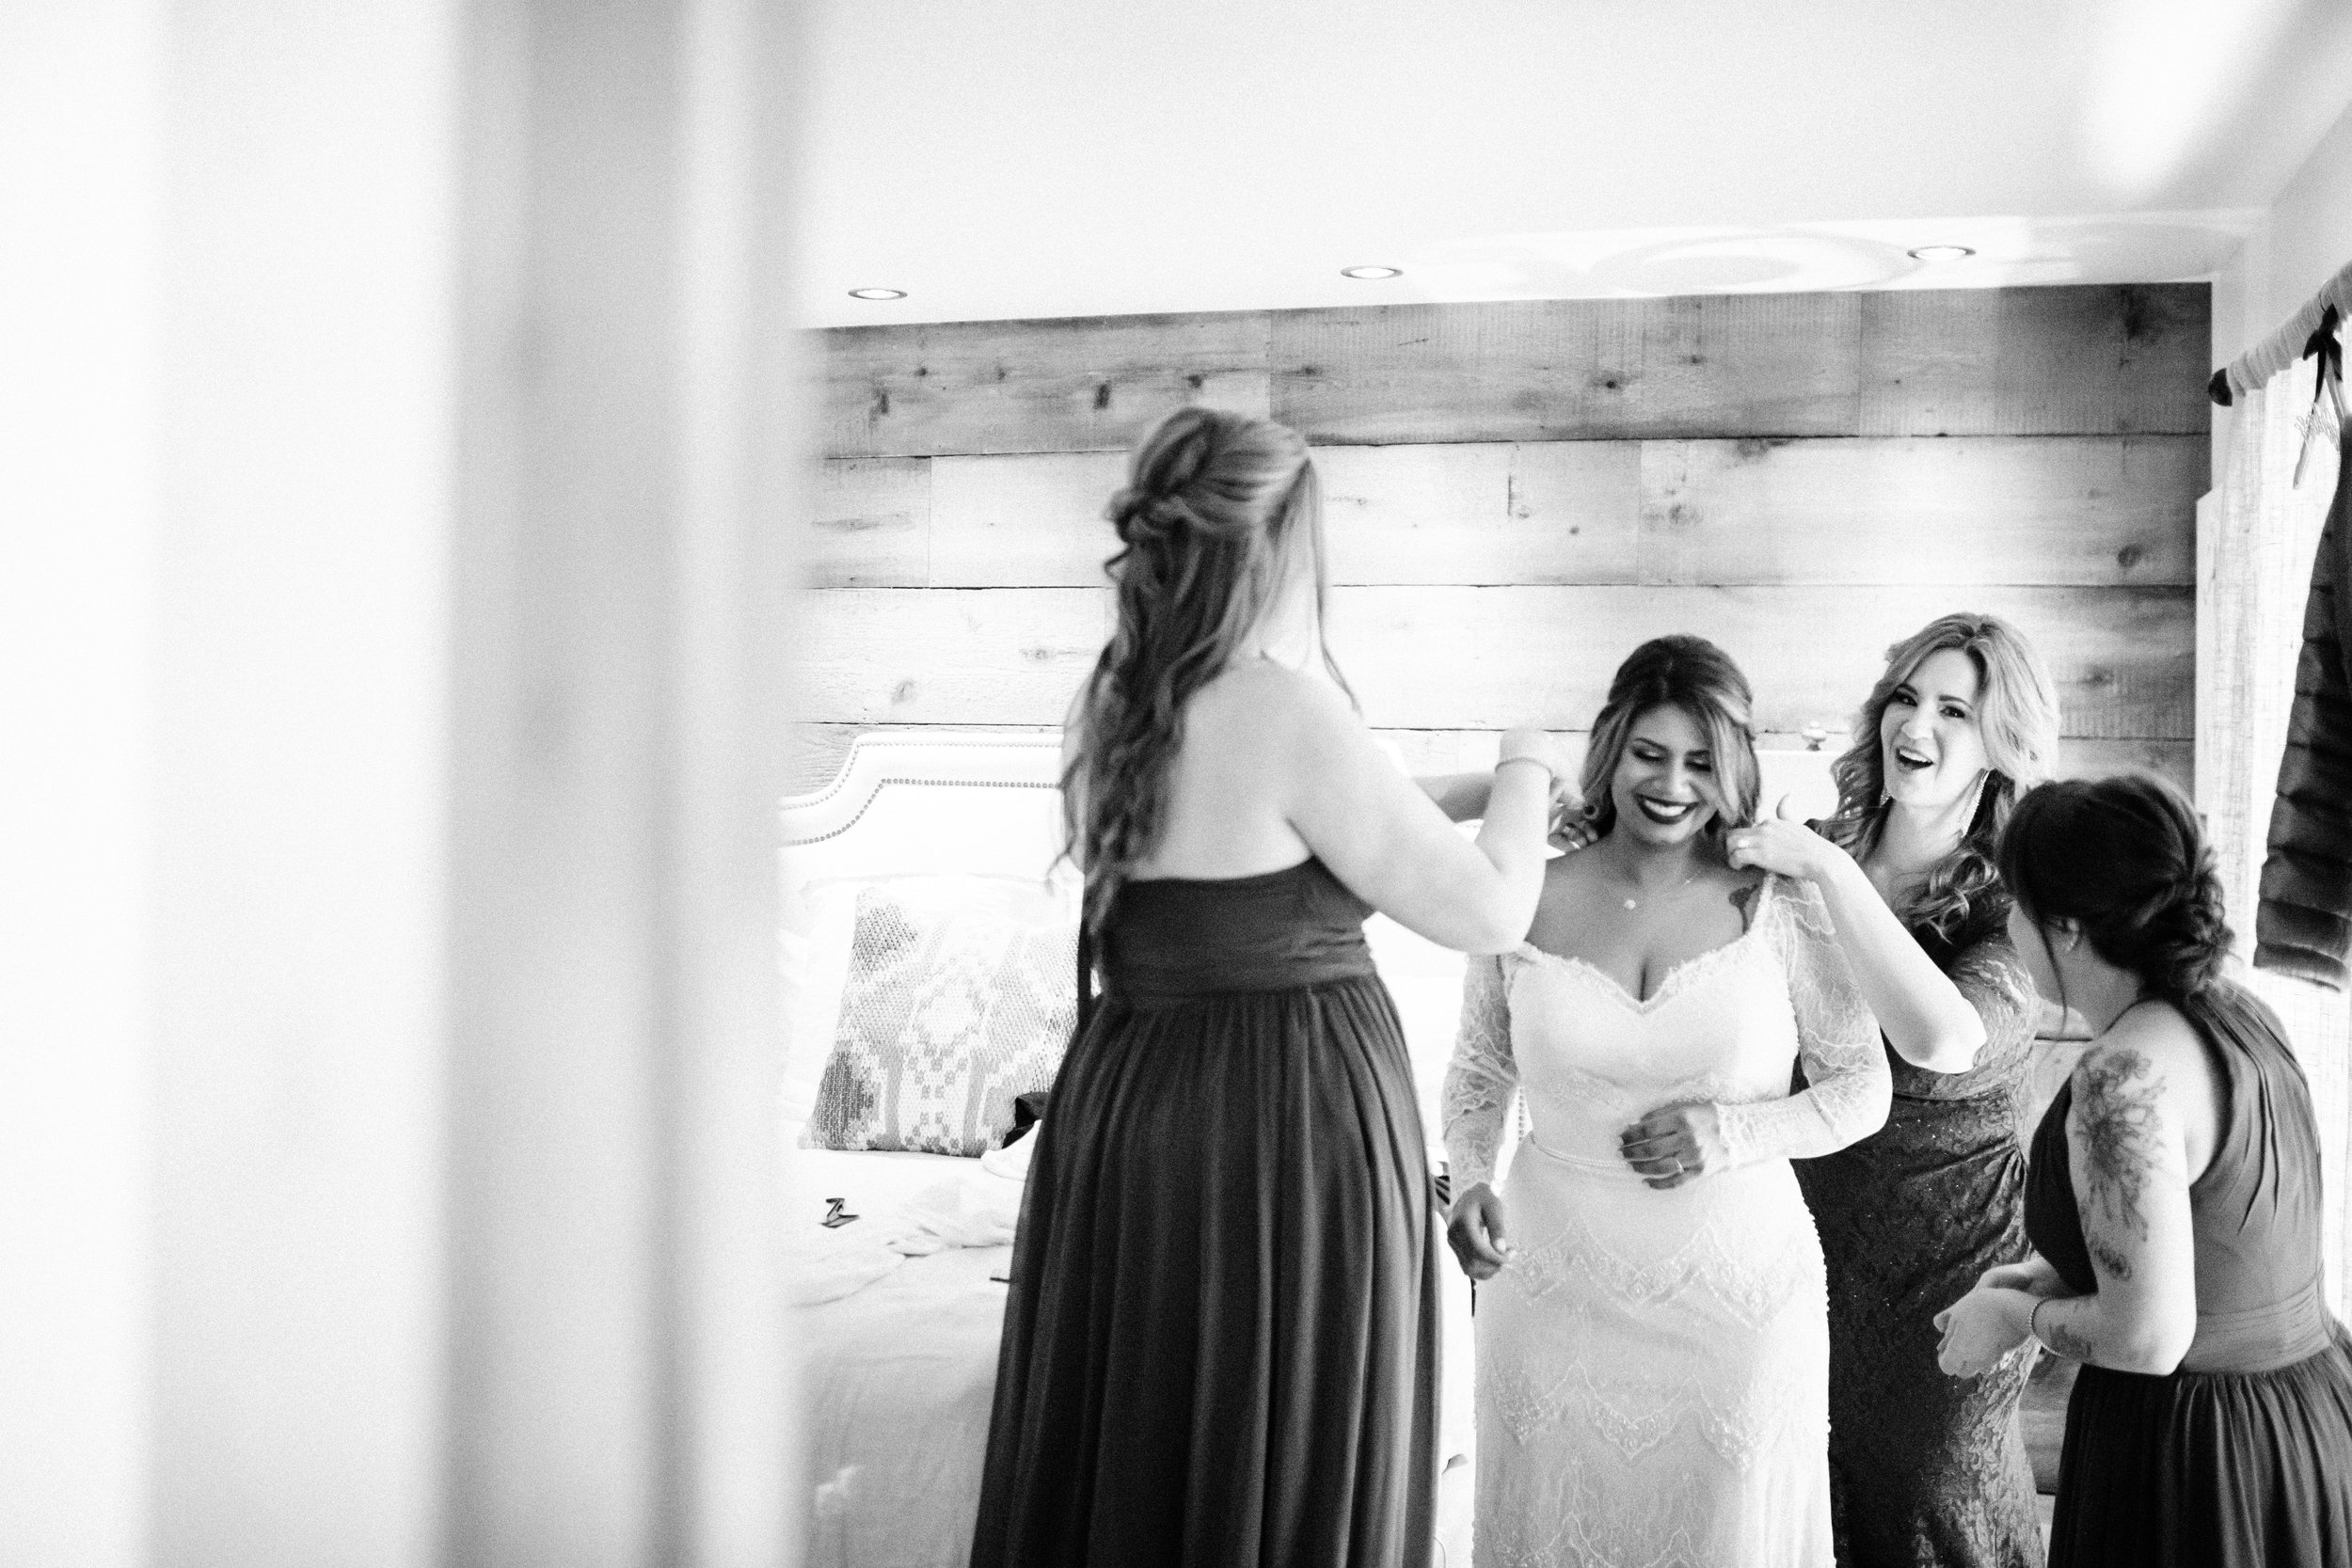 bay area nontraditional wedding photographer southern california boho wedding love light magic san francisco oakland northern california-122.jpg